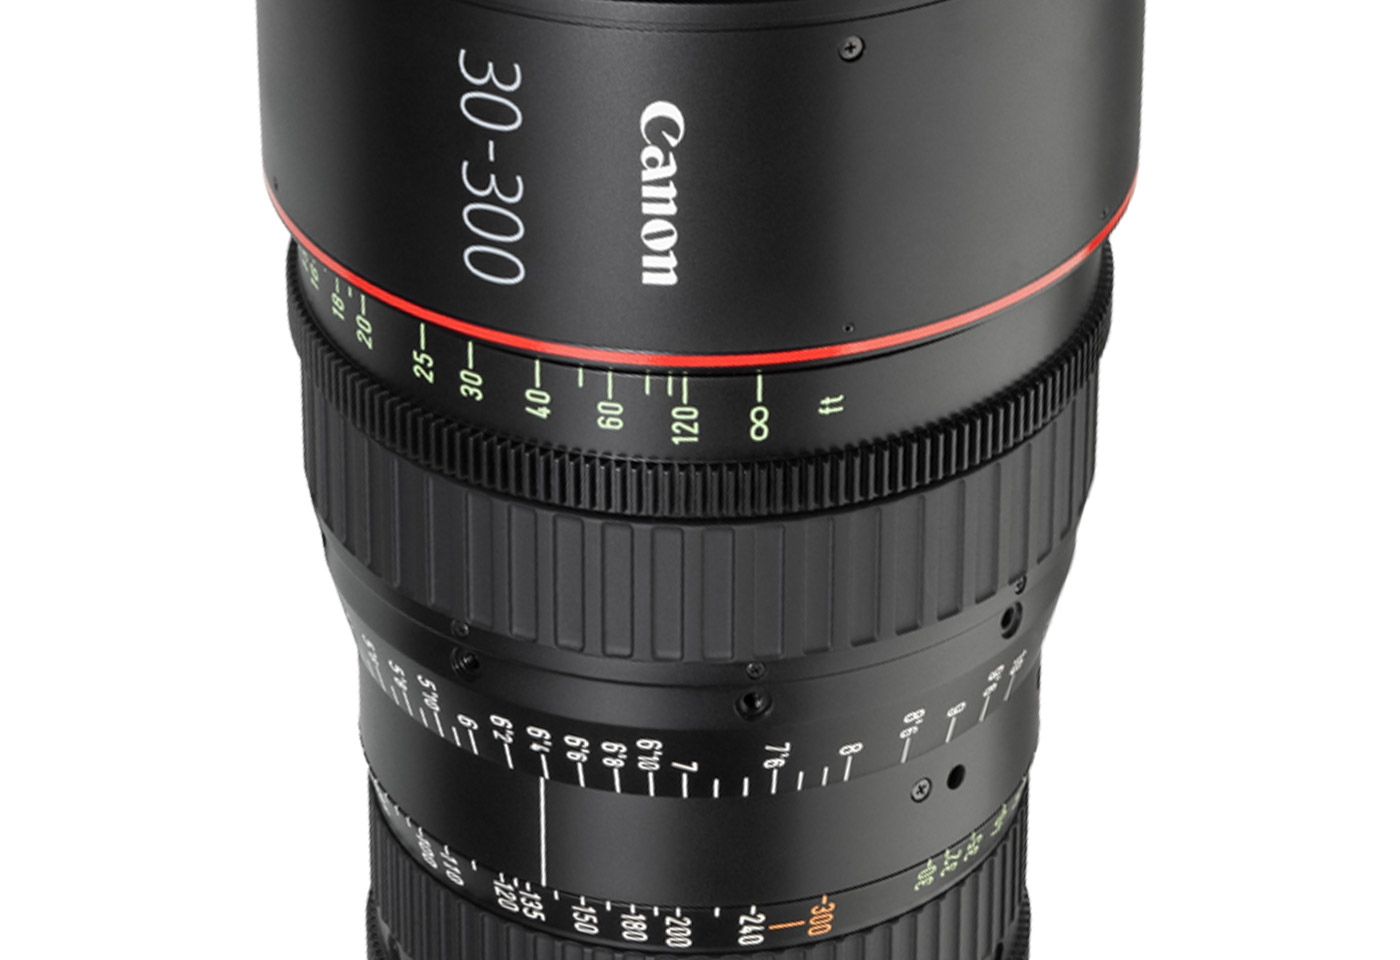 CN-E-30-300mm-L- easy to read